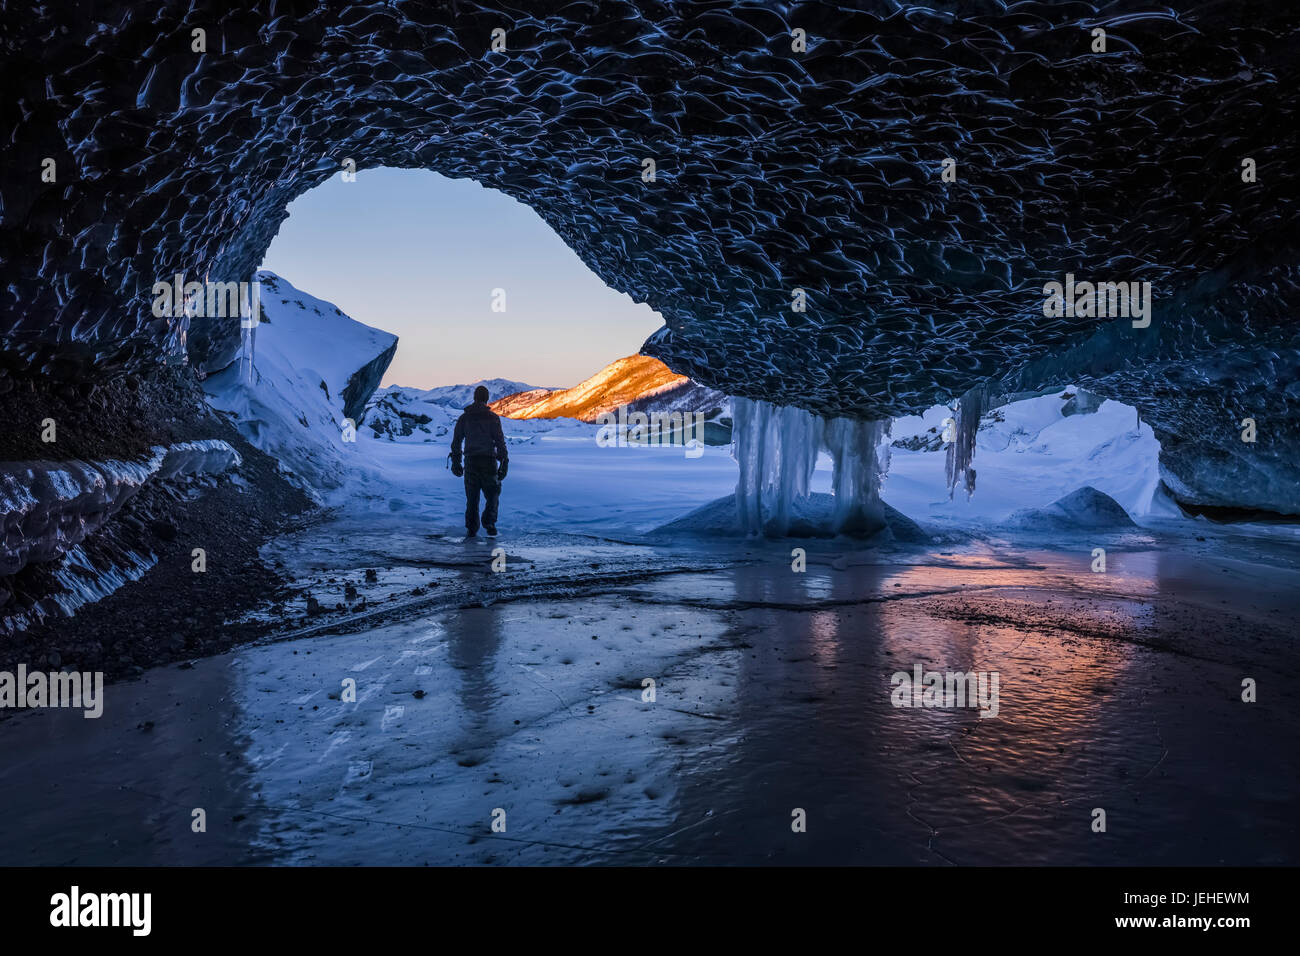 A man walks out the entrance of an ice tunnel at the terminus of Canwell Glacier in the Alaska Range in mid-winter; - Stock Image